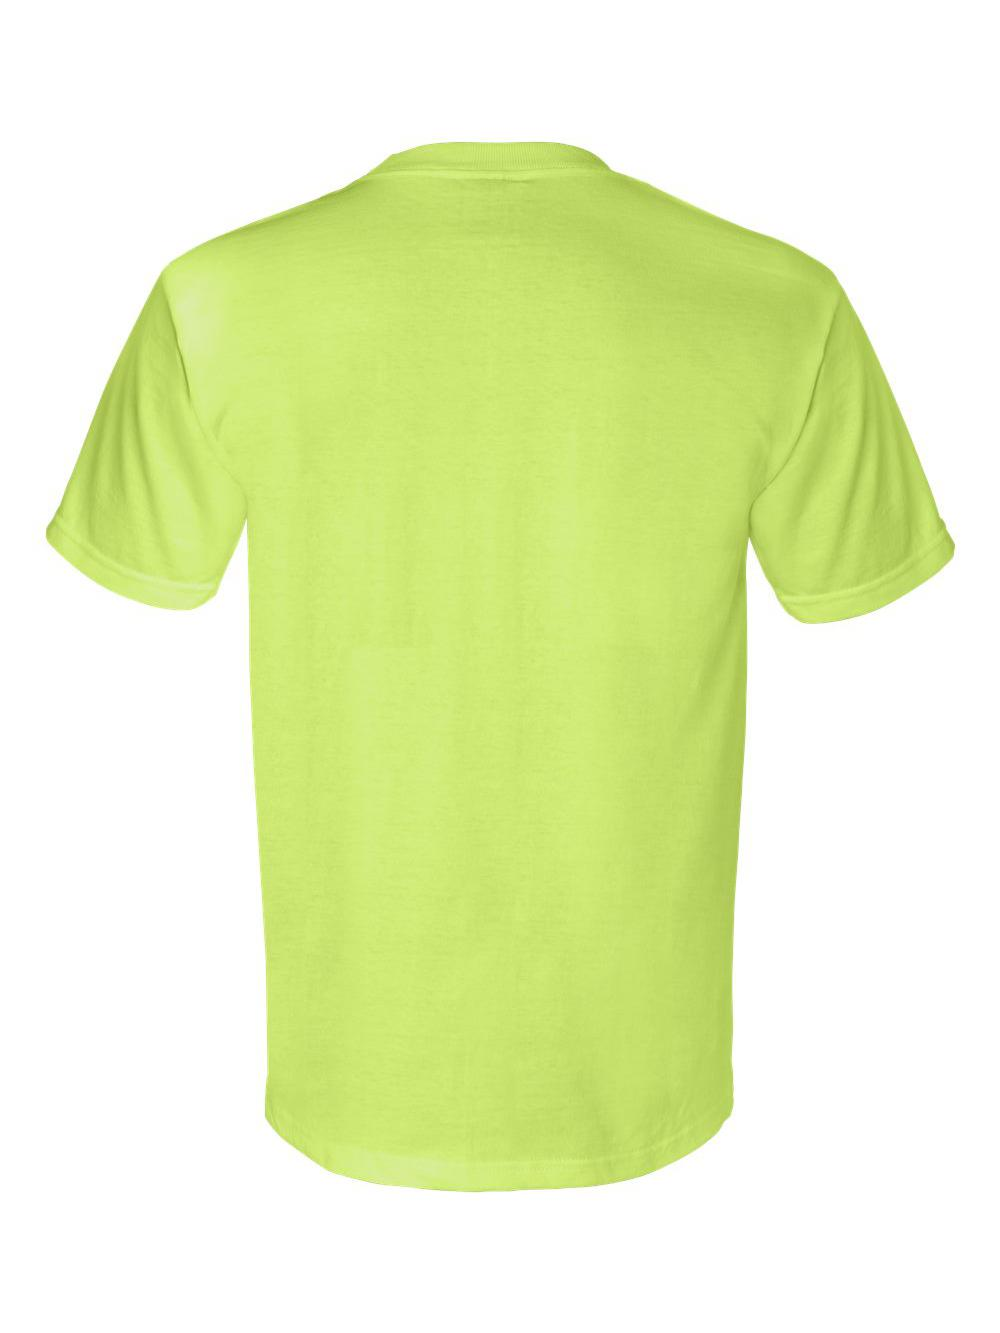 Bayside-Union-Made-Short-Sleeve-T-Shirt-with-a-Pocket-3015 thumbnail 16